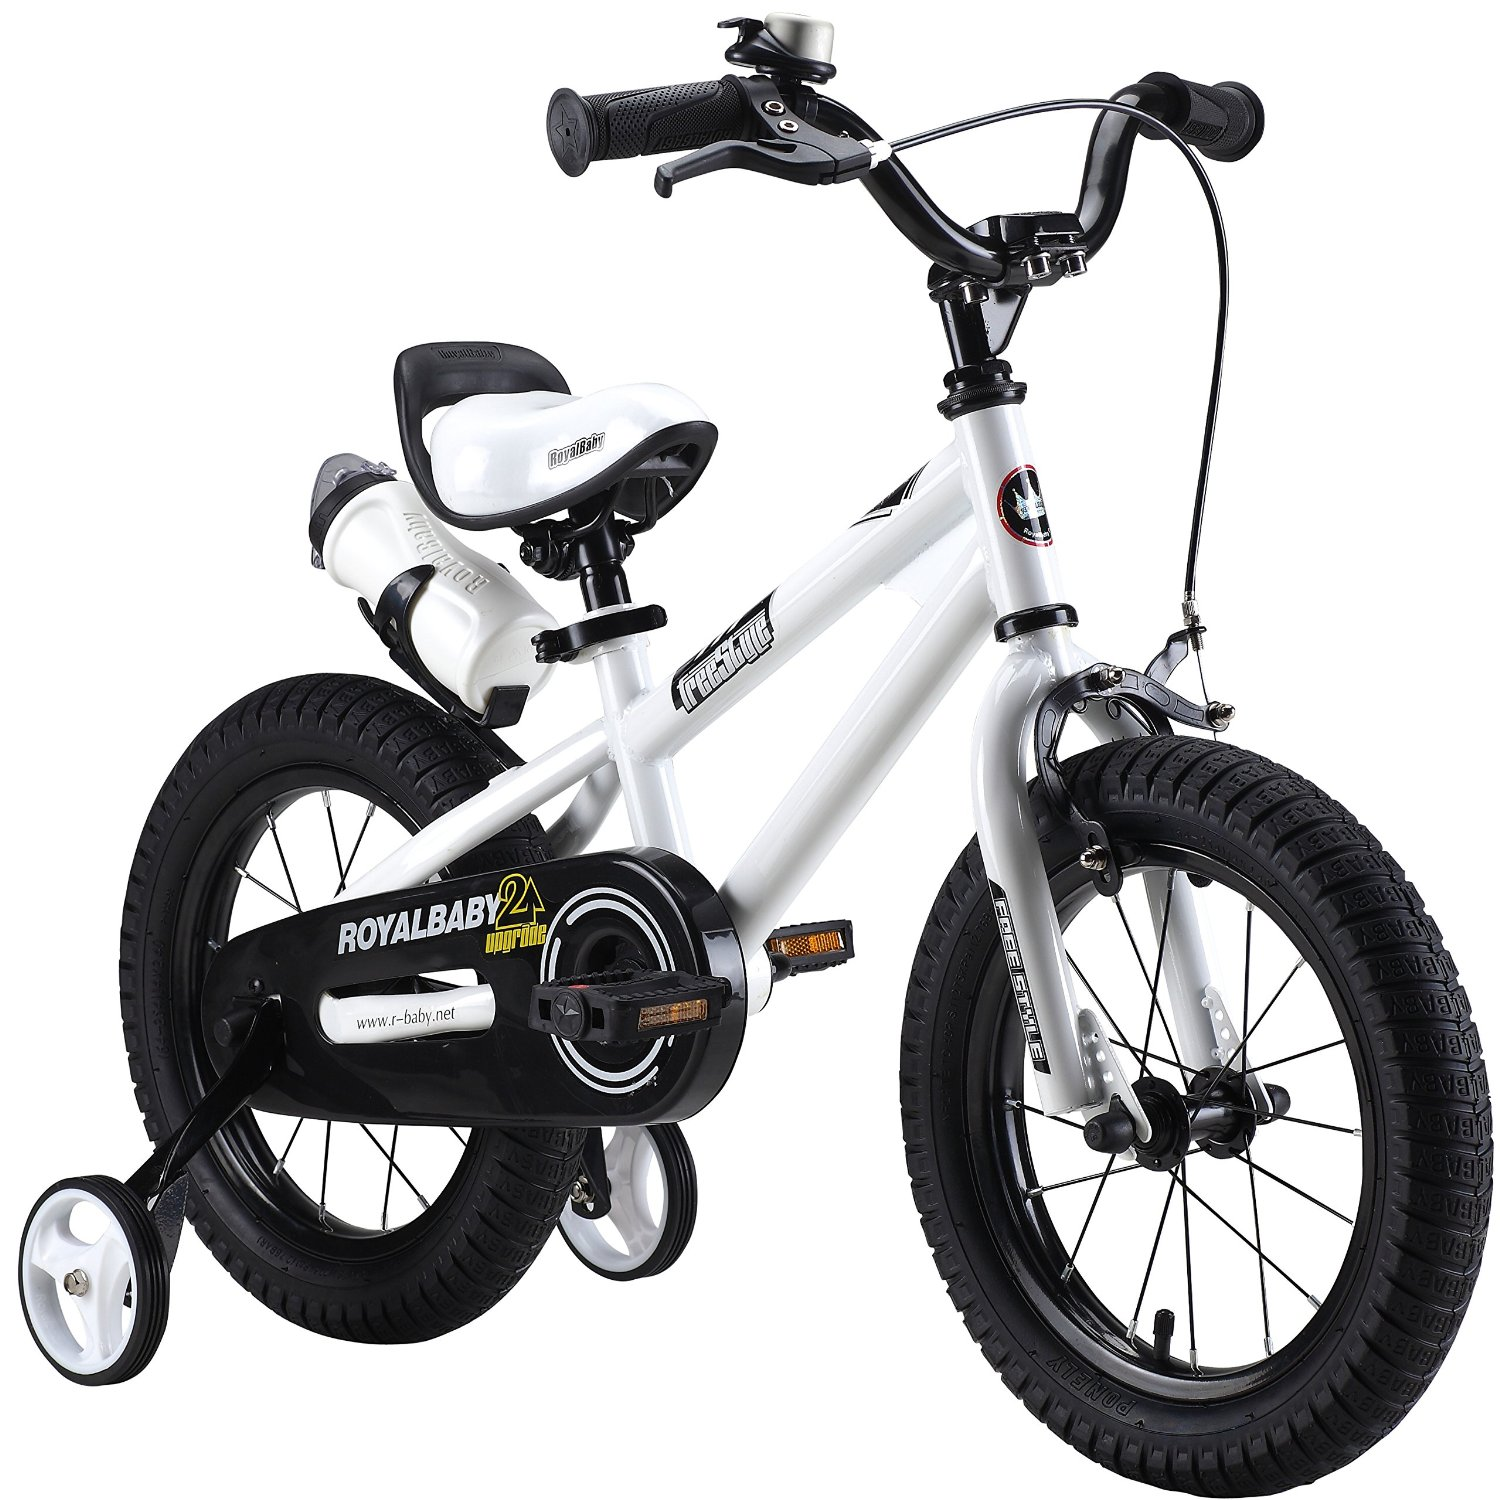 ac8b426ad75 Toddler Bikes & Helmets That Don't Look Like Moving Billboards for ...